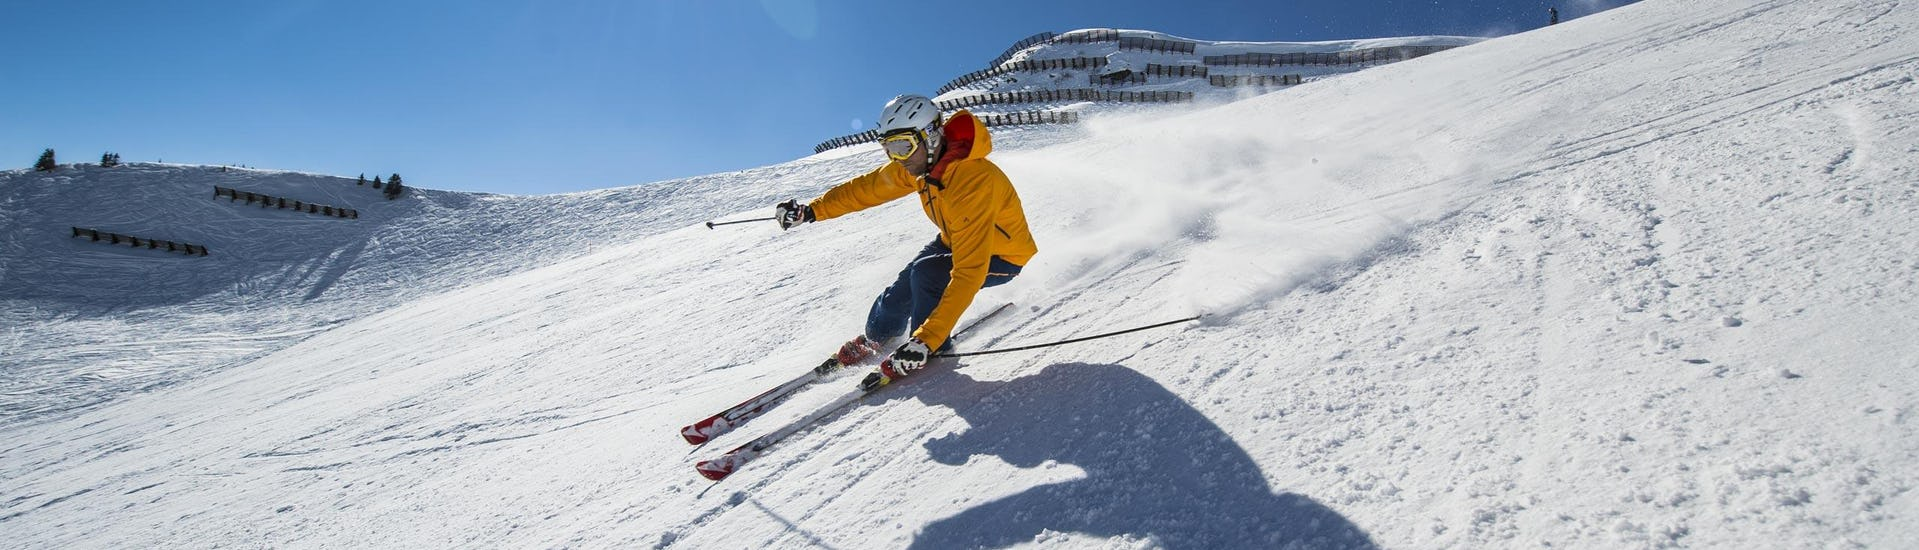 Adult Private Ski Lessons - All Levels - Morning: A skier is skiing down a sunny ski slope while participating in an activity offered by Summit Ski & Snowboard School.